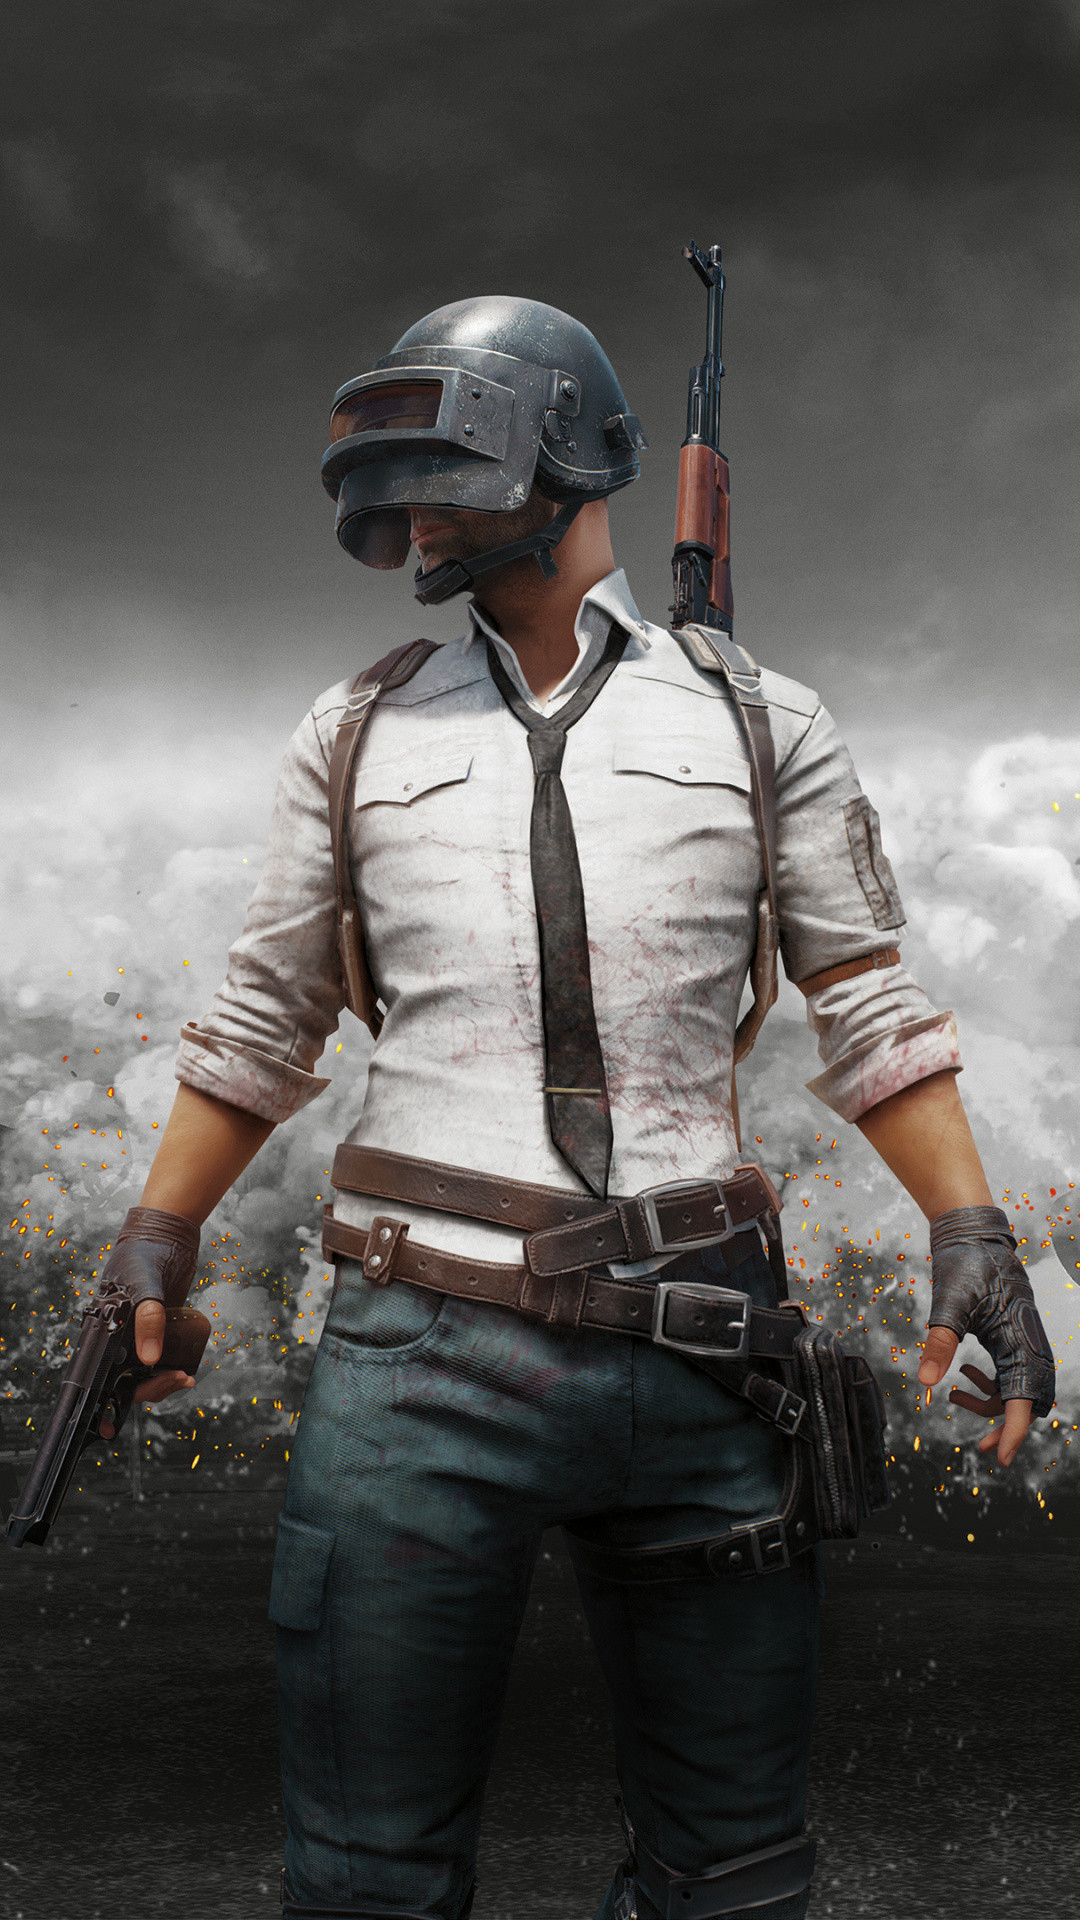 Pubg, Mobile 2018, Monochrome, Wallpaper - Pubg Wallpaper 4k Mobile , HD Wallpaper & Backgrounds